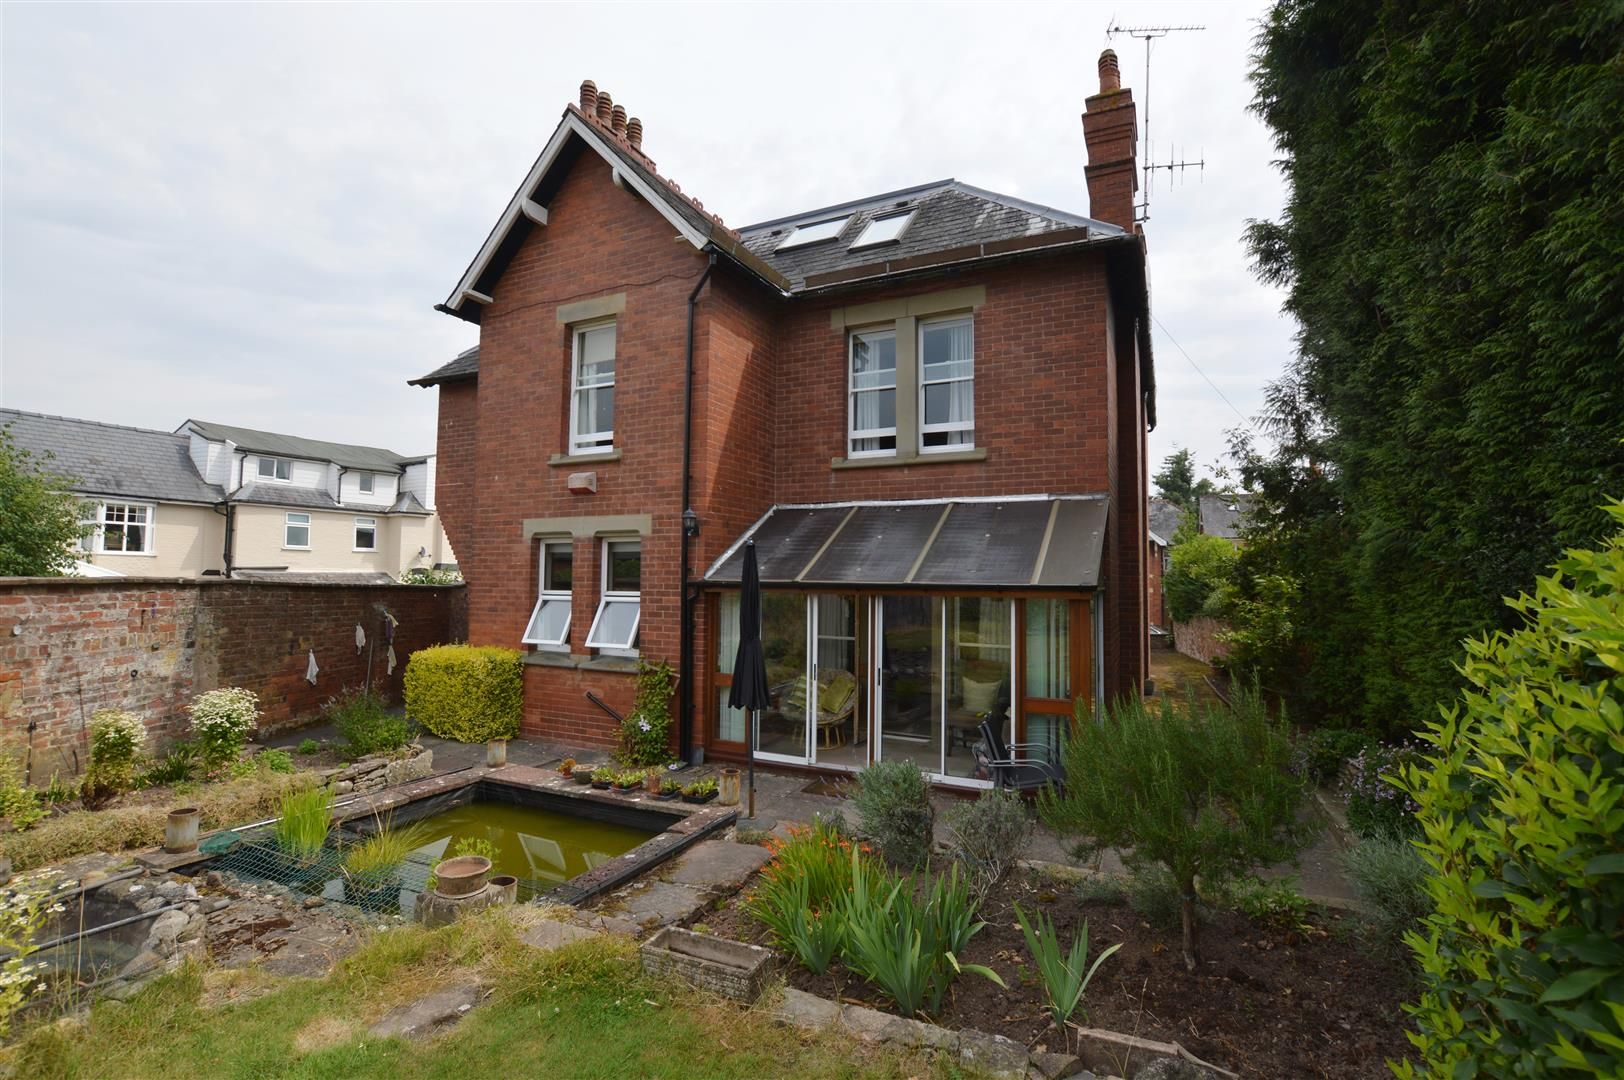 6 bed detached for sale in Leominster 13